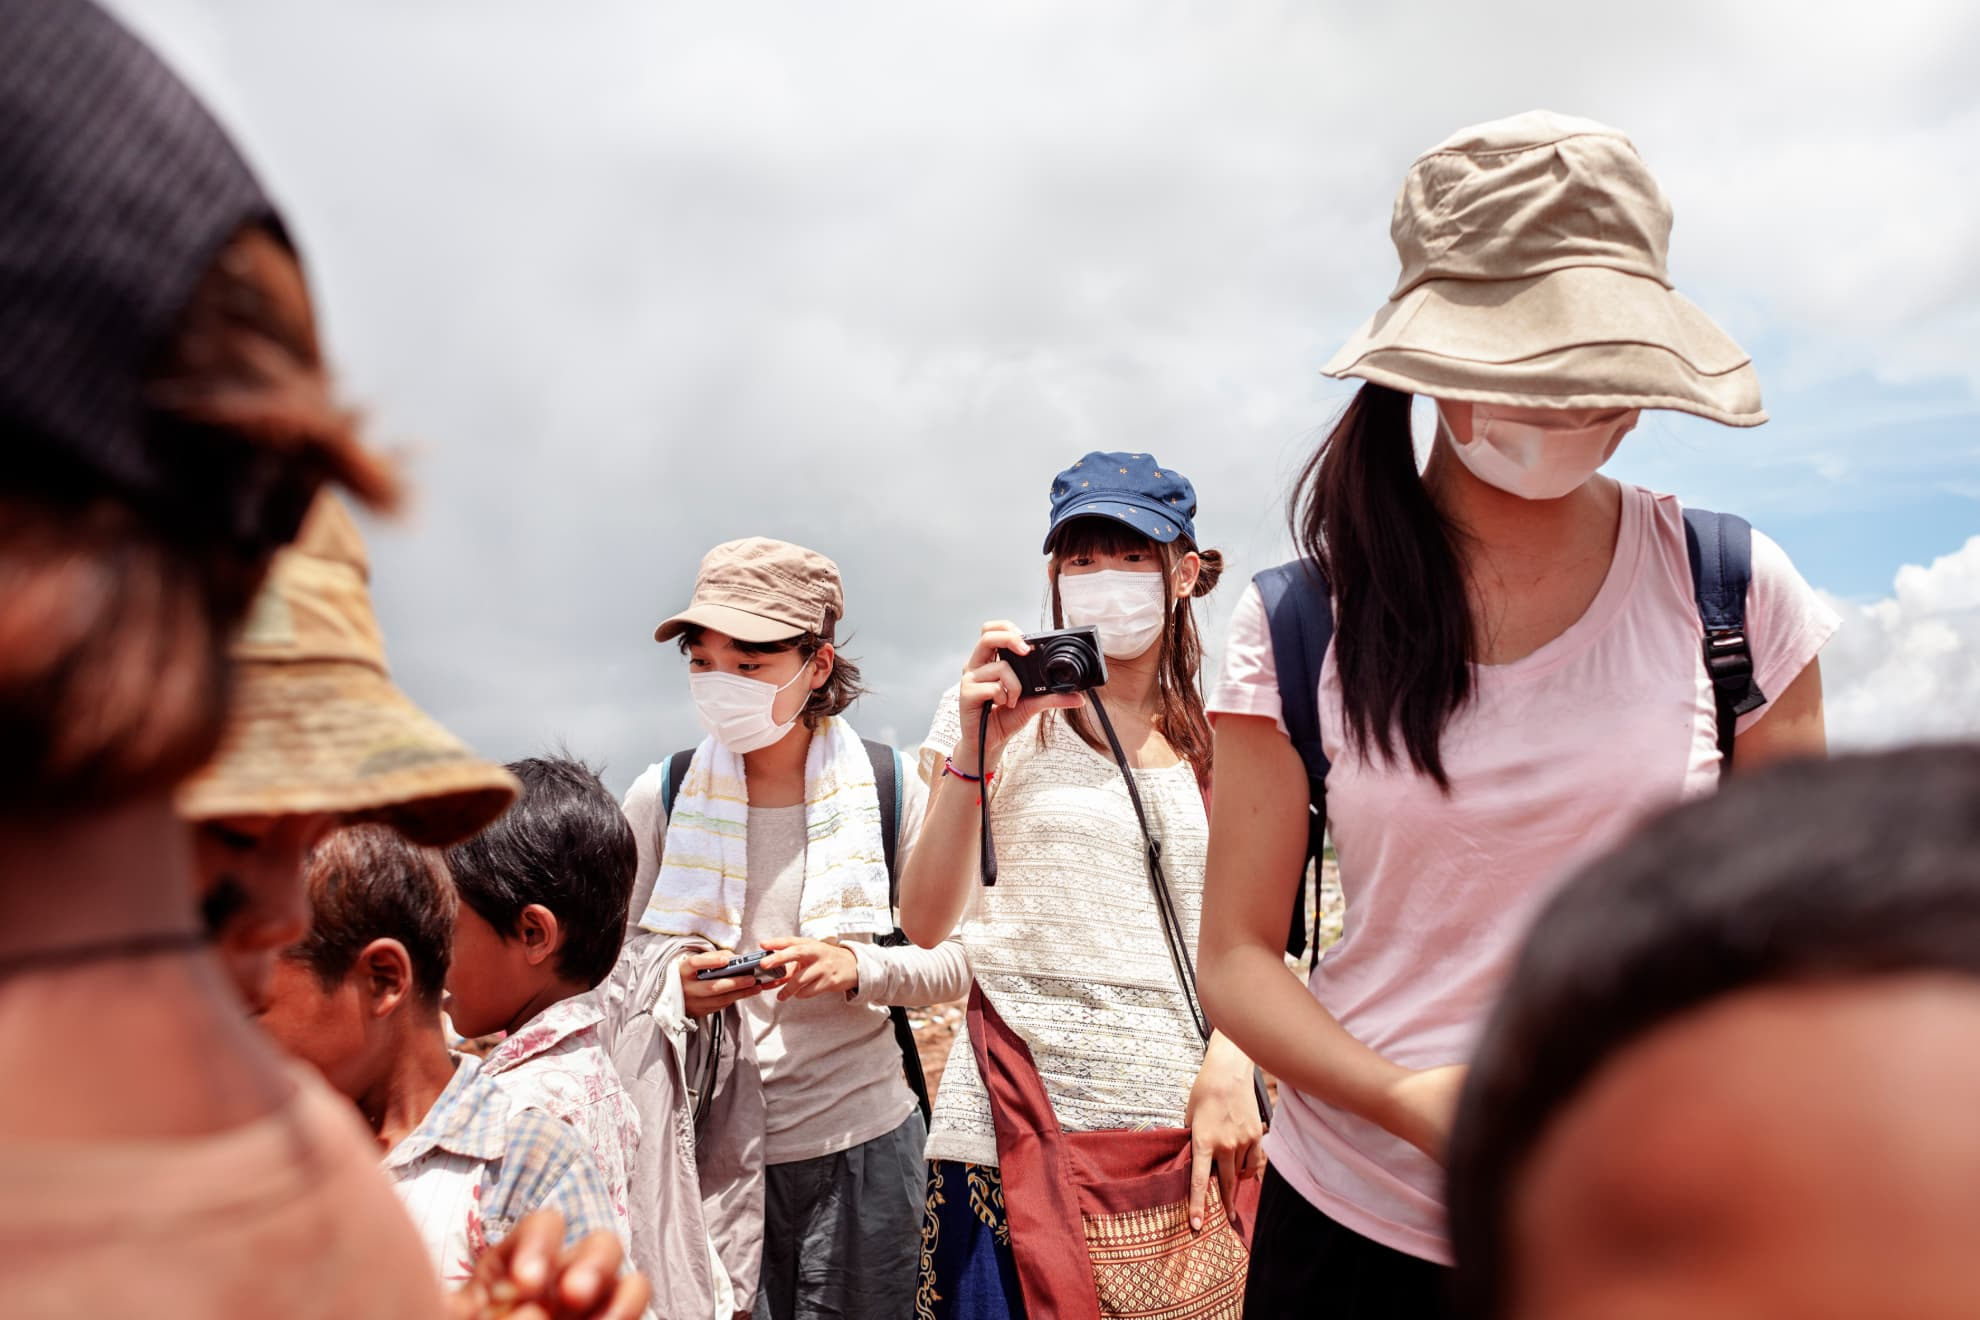 A Japanese tourist wearing a mask takes pictures of the children working in the rubbish dump. She is visiting the site as a tourist attraction.